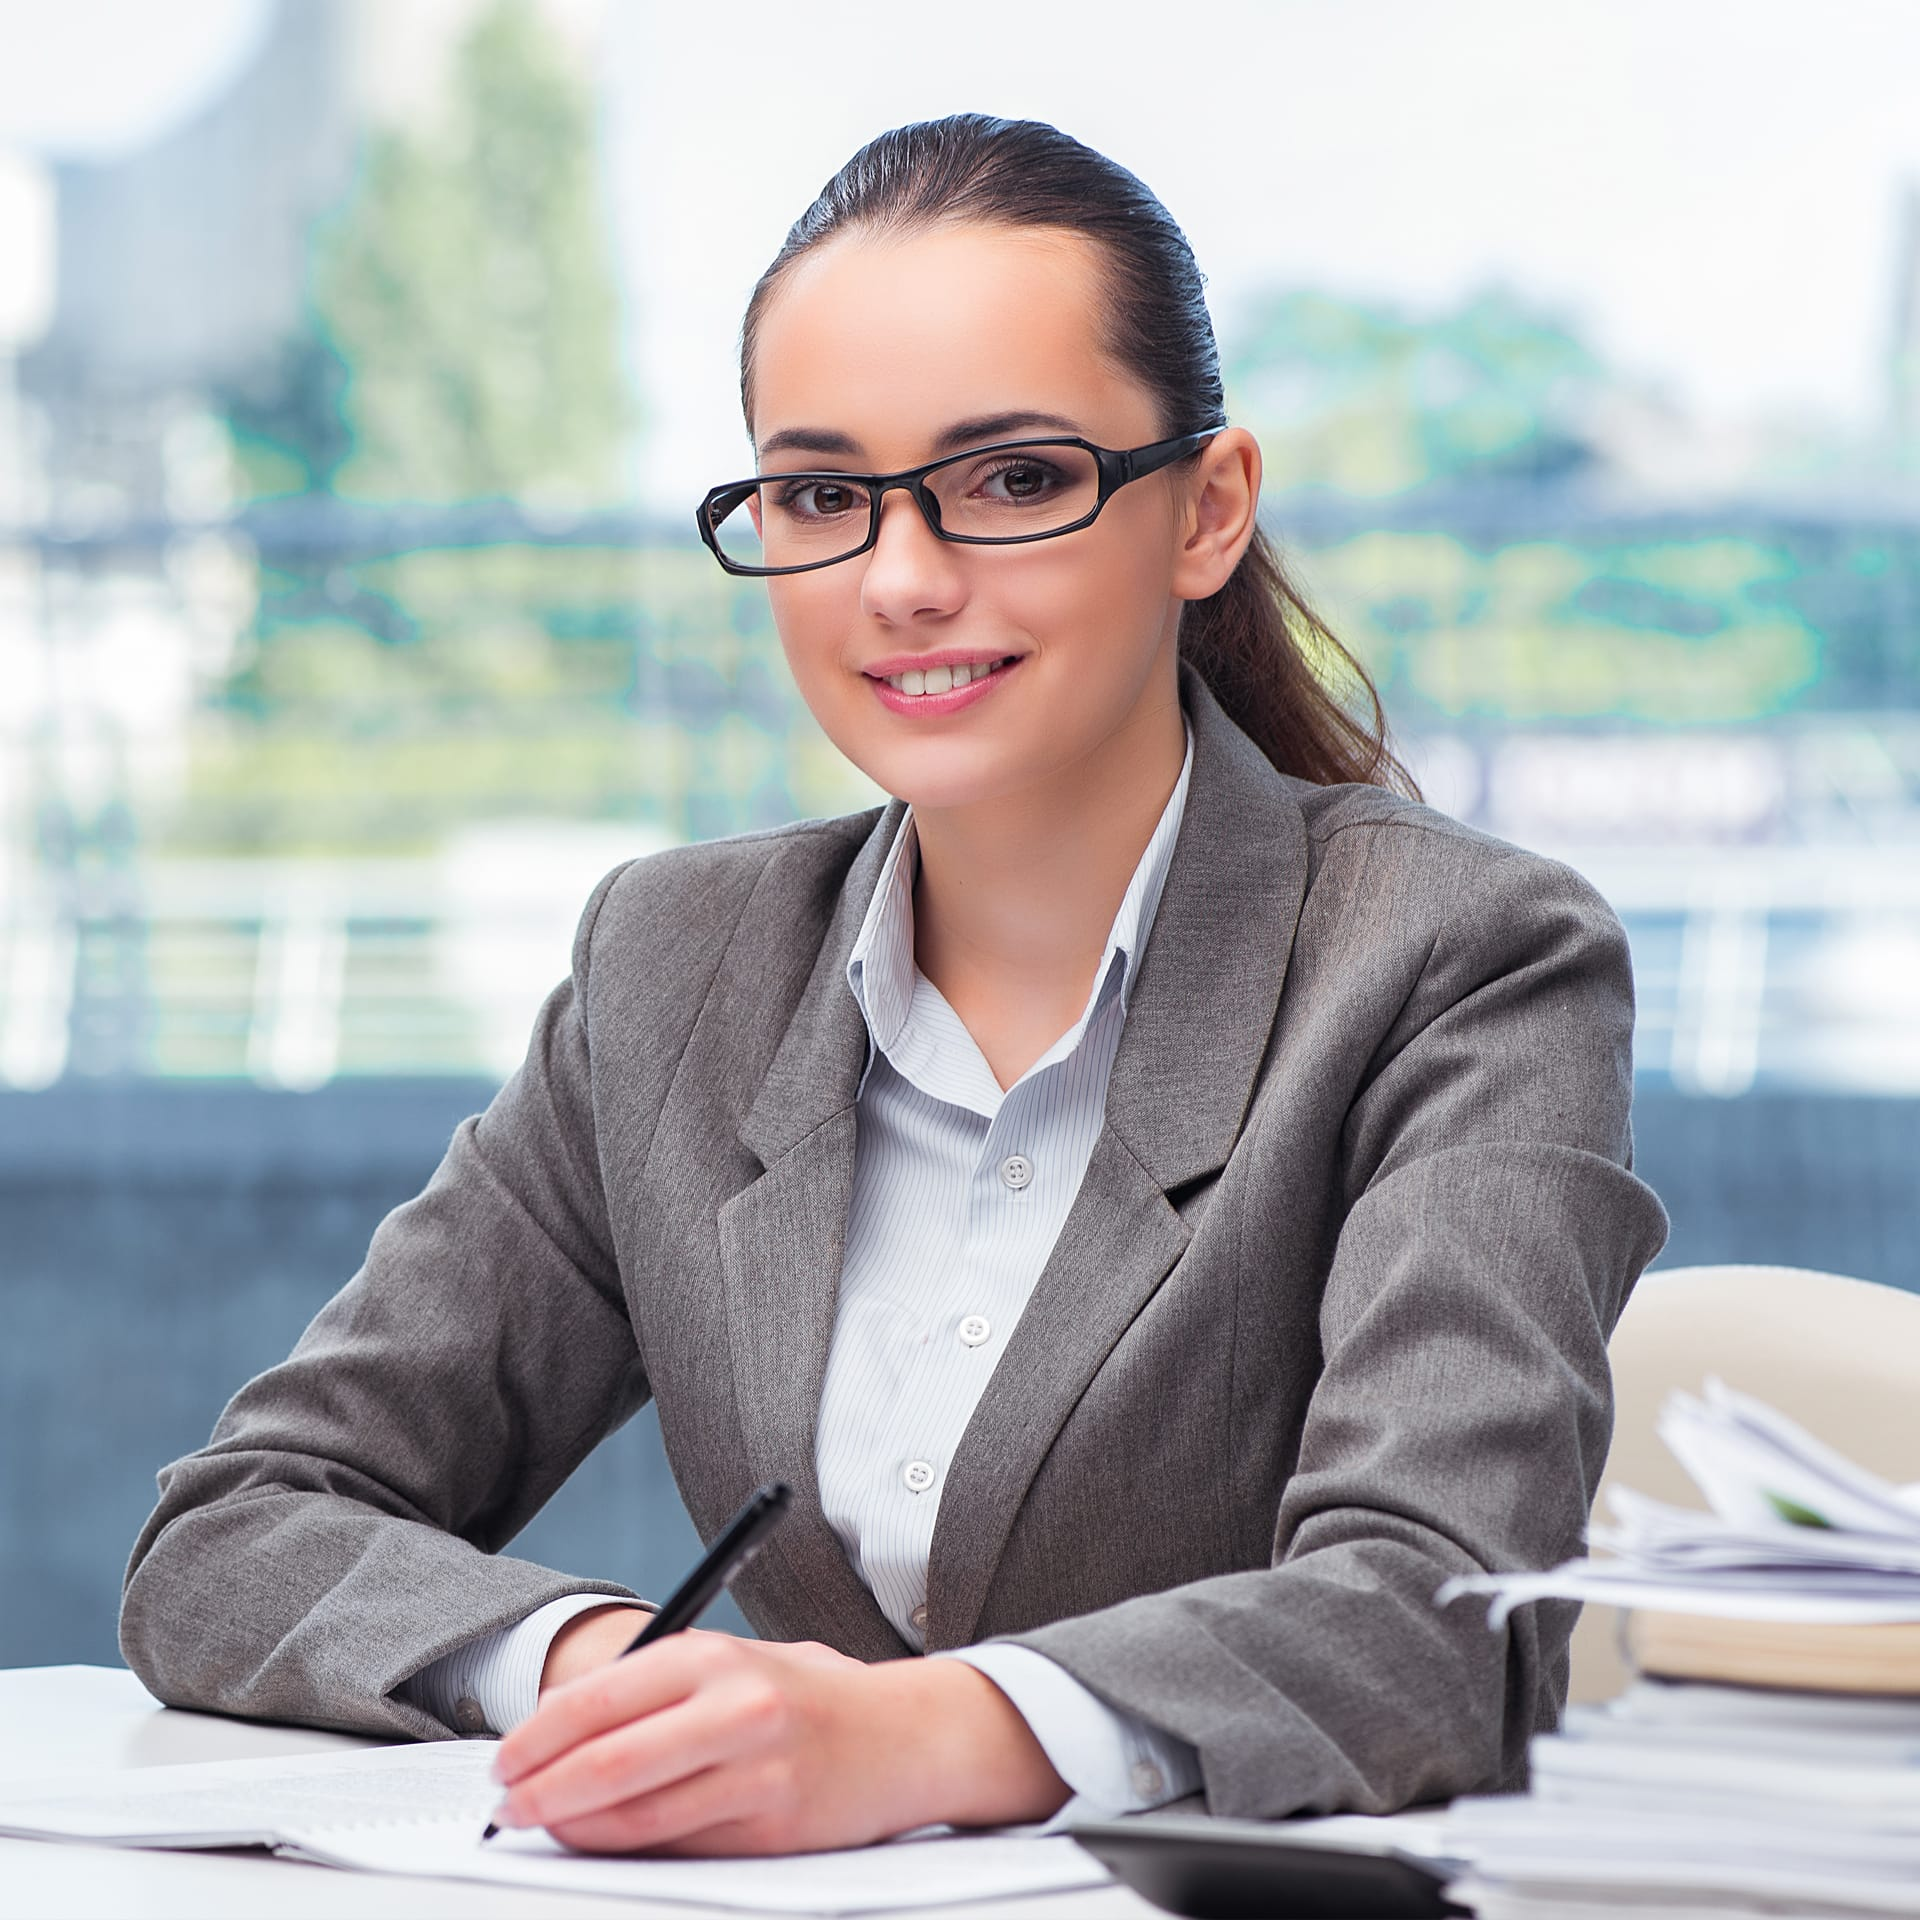 Financial Services Professional